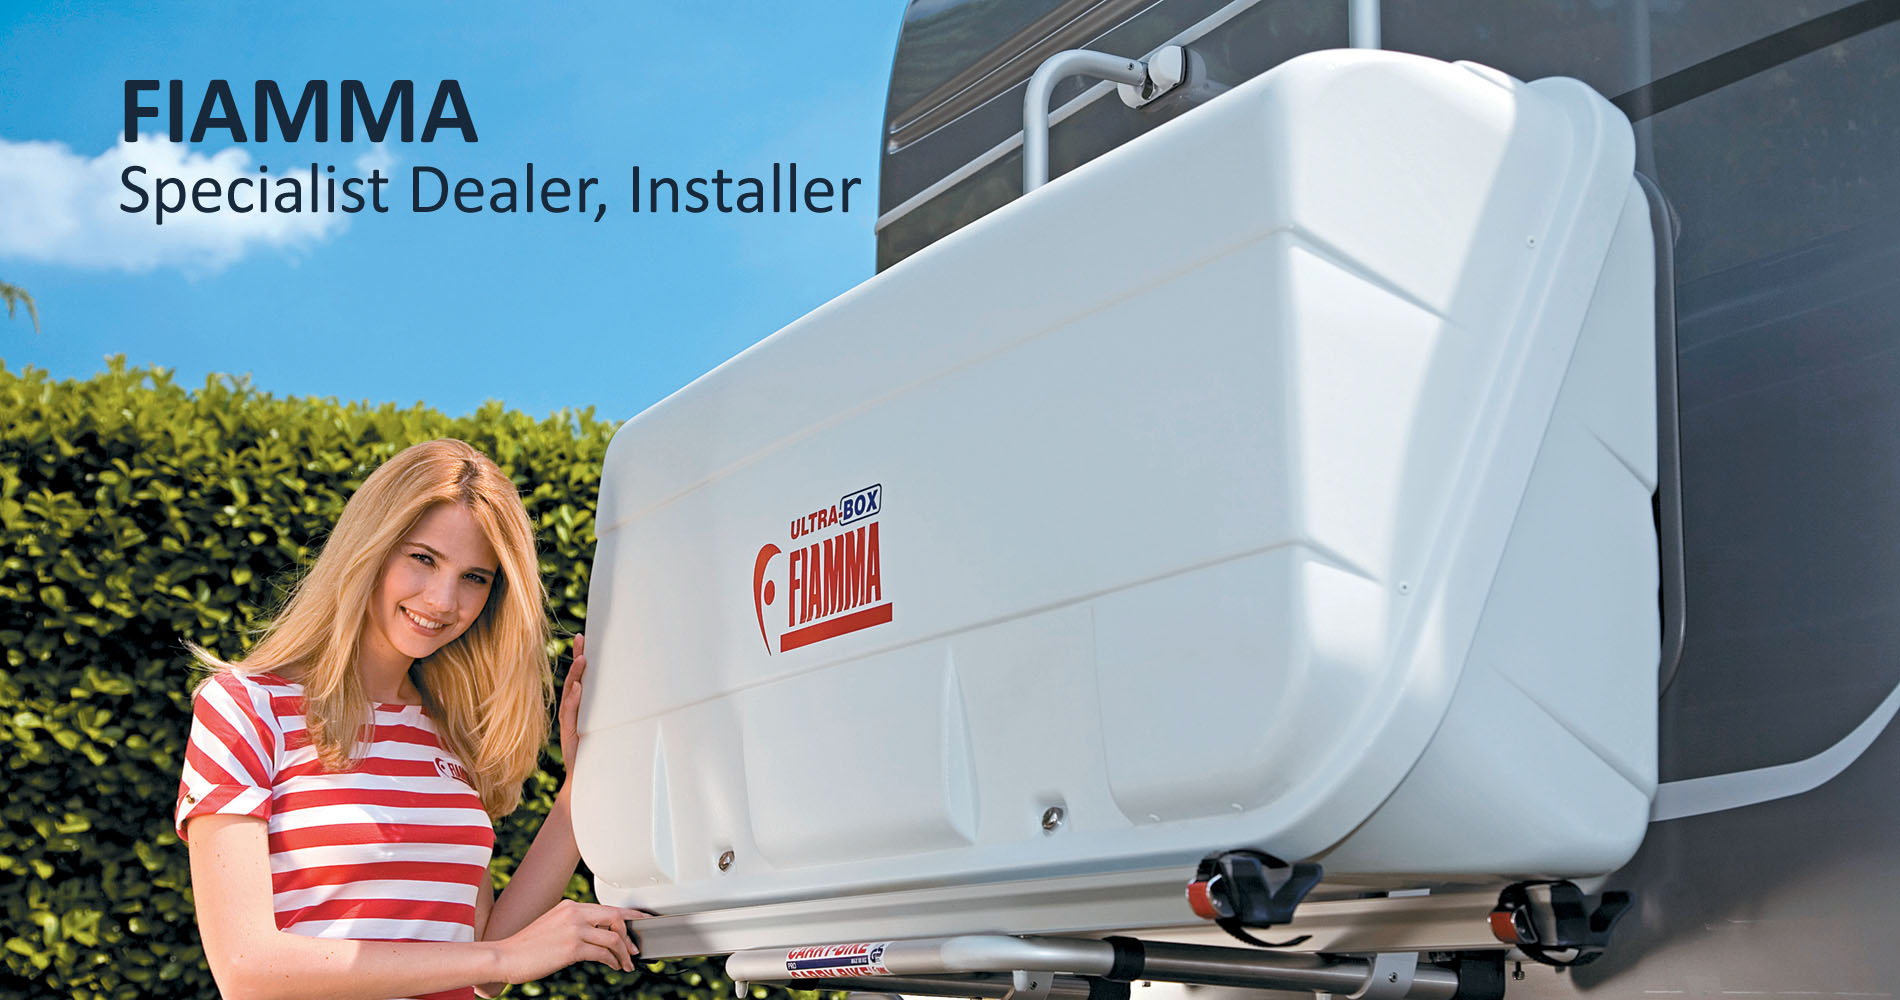 Fiamma Specialist Dealer & Installer